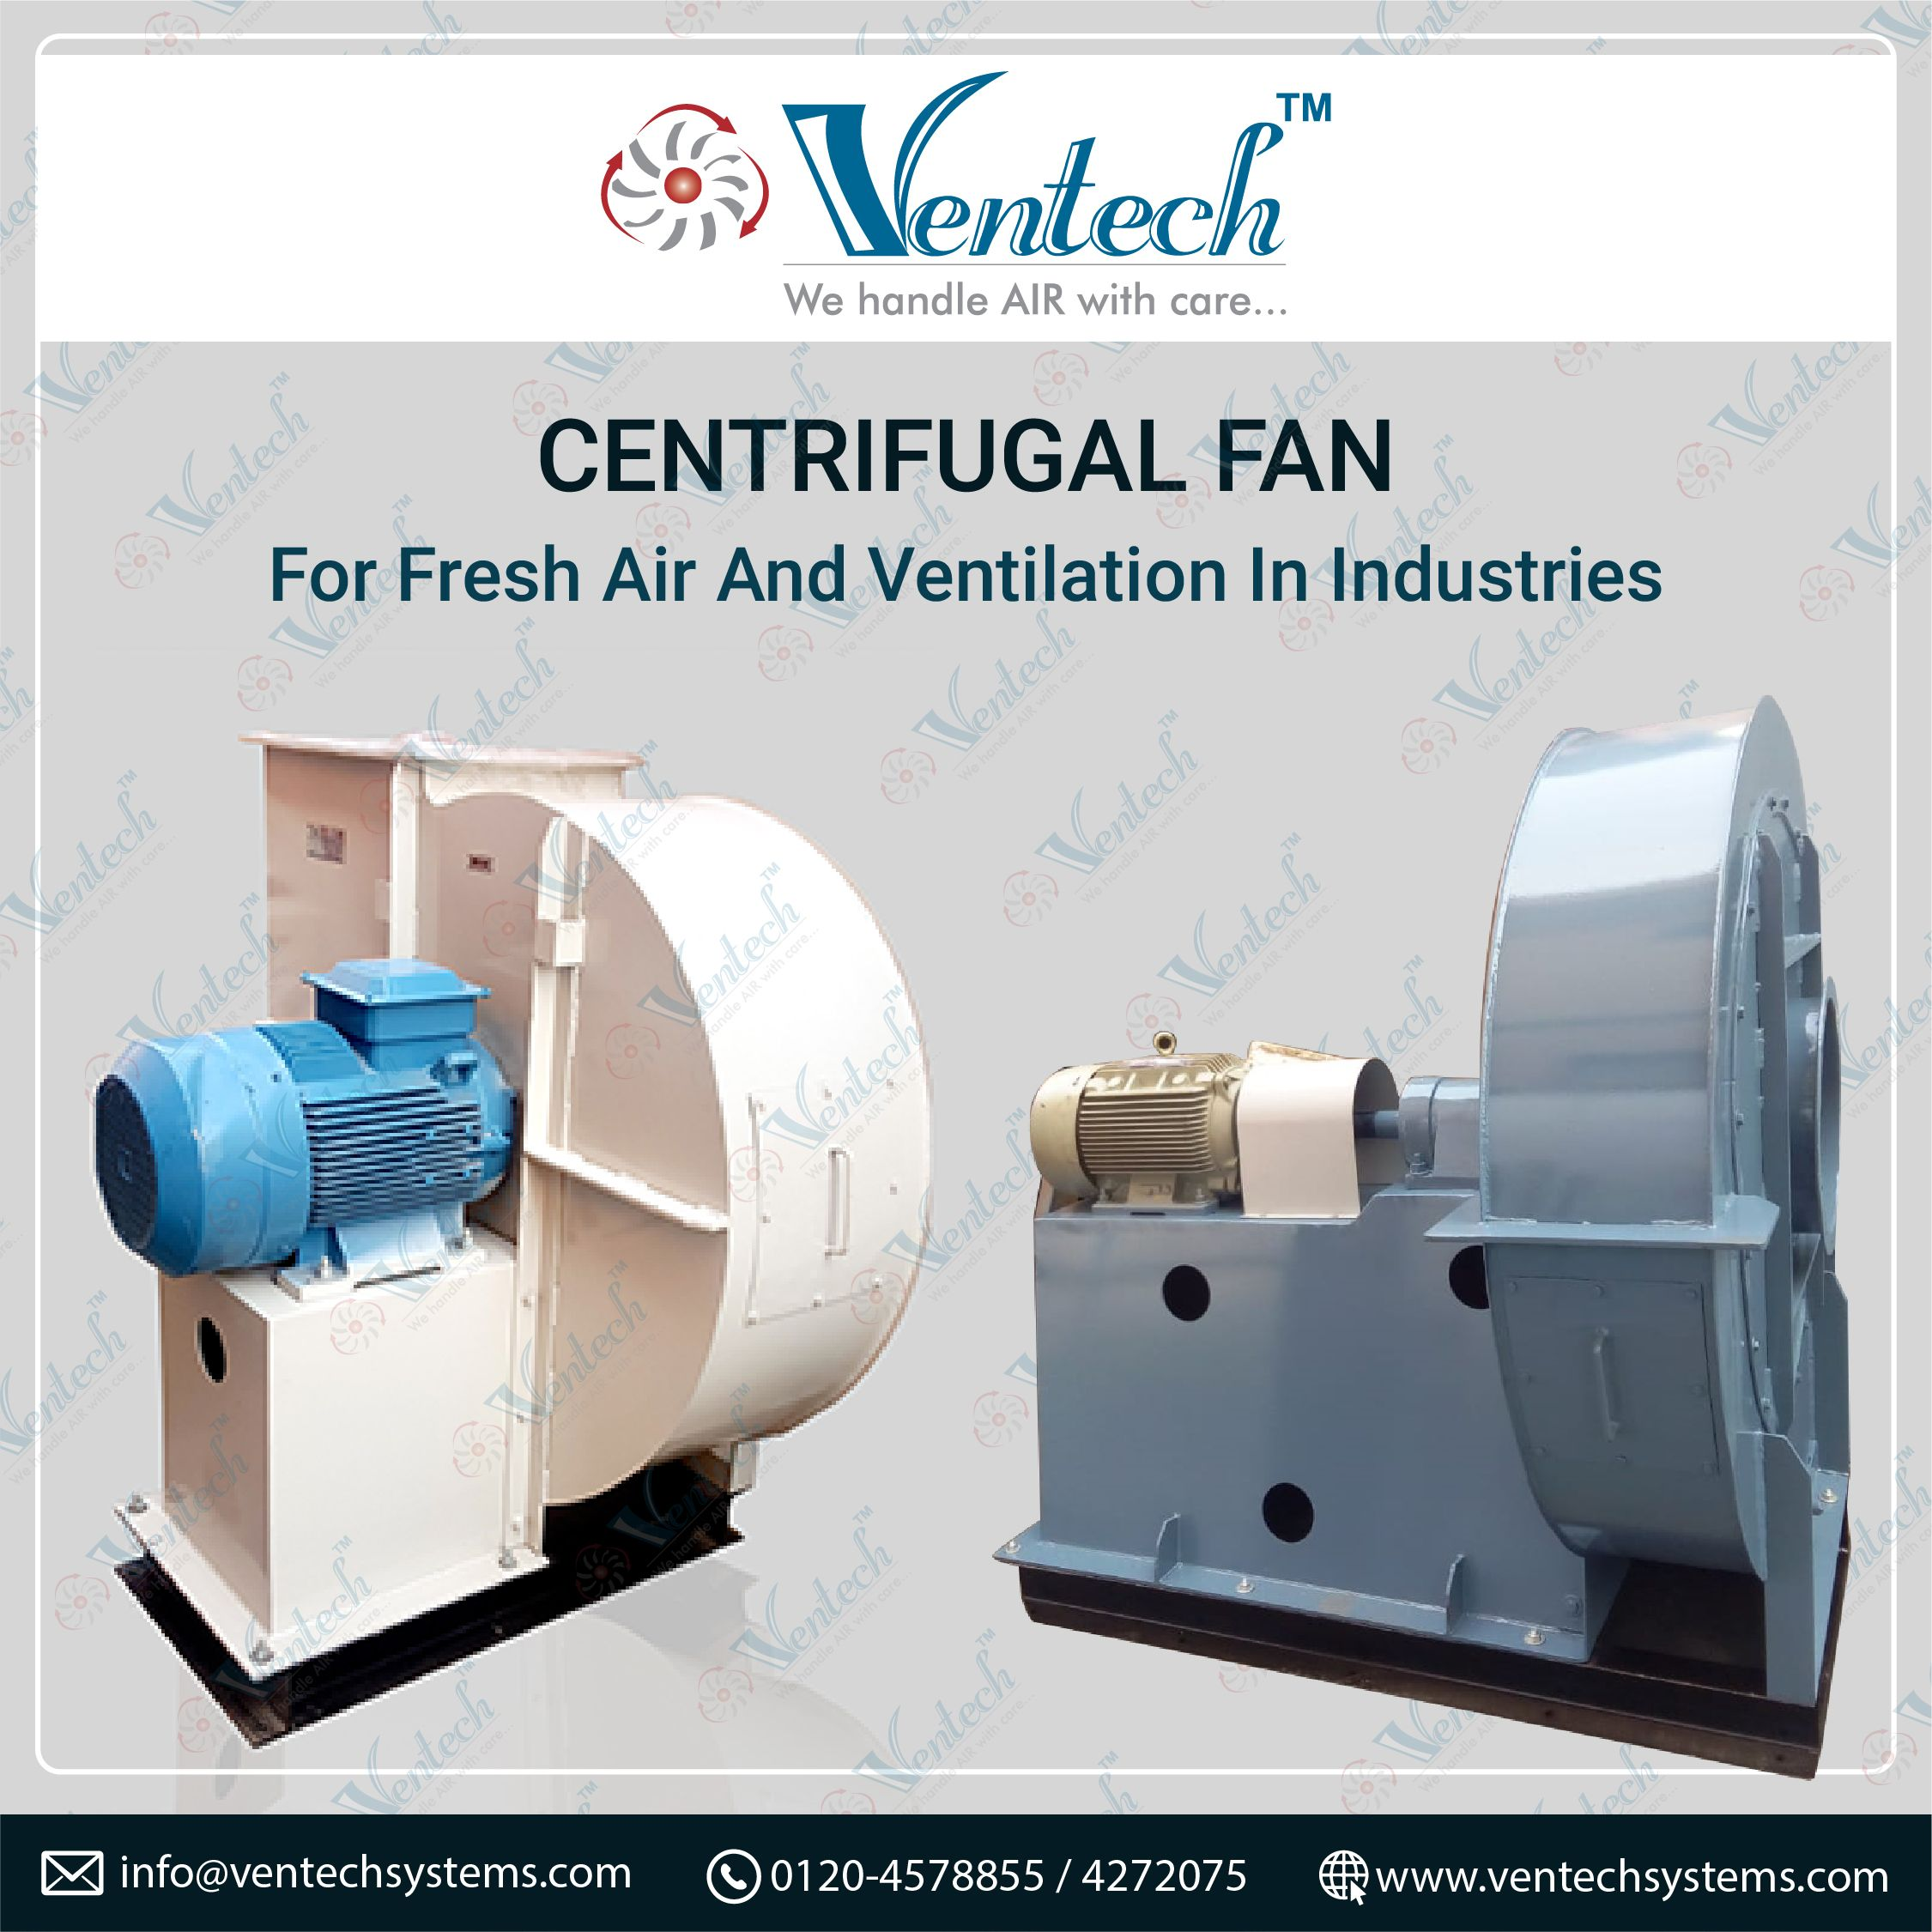 Ventech Systems provides highly efficient Air handling